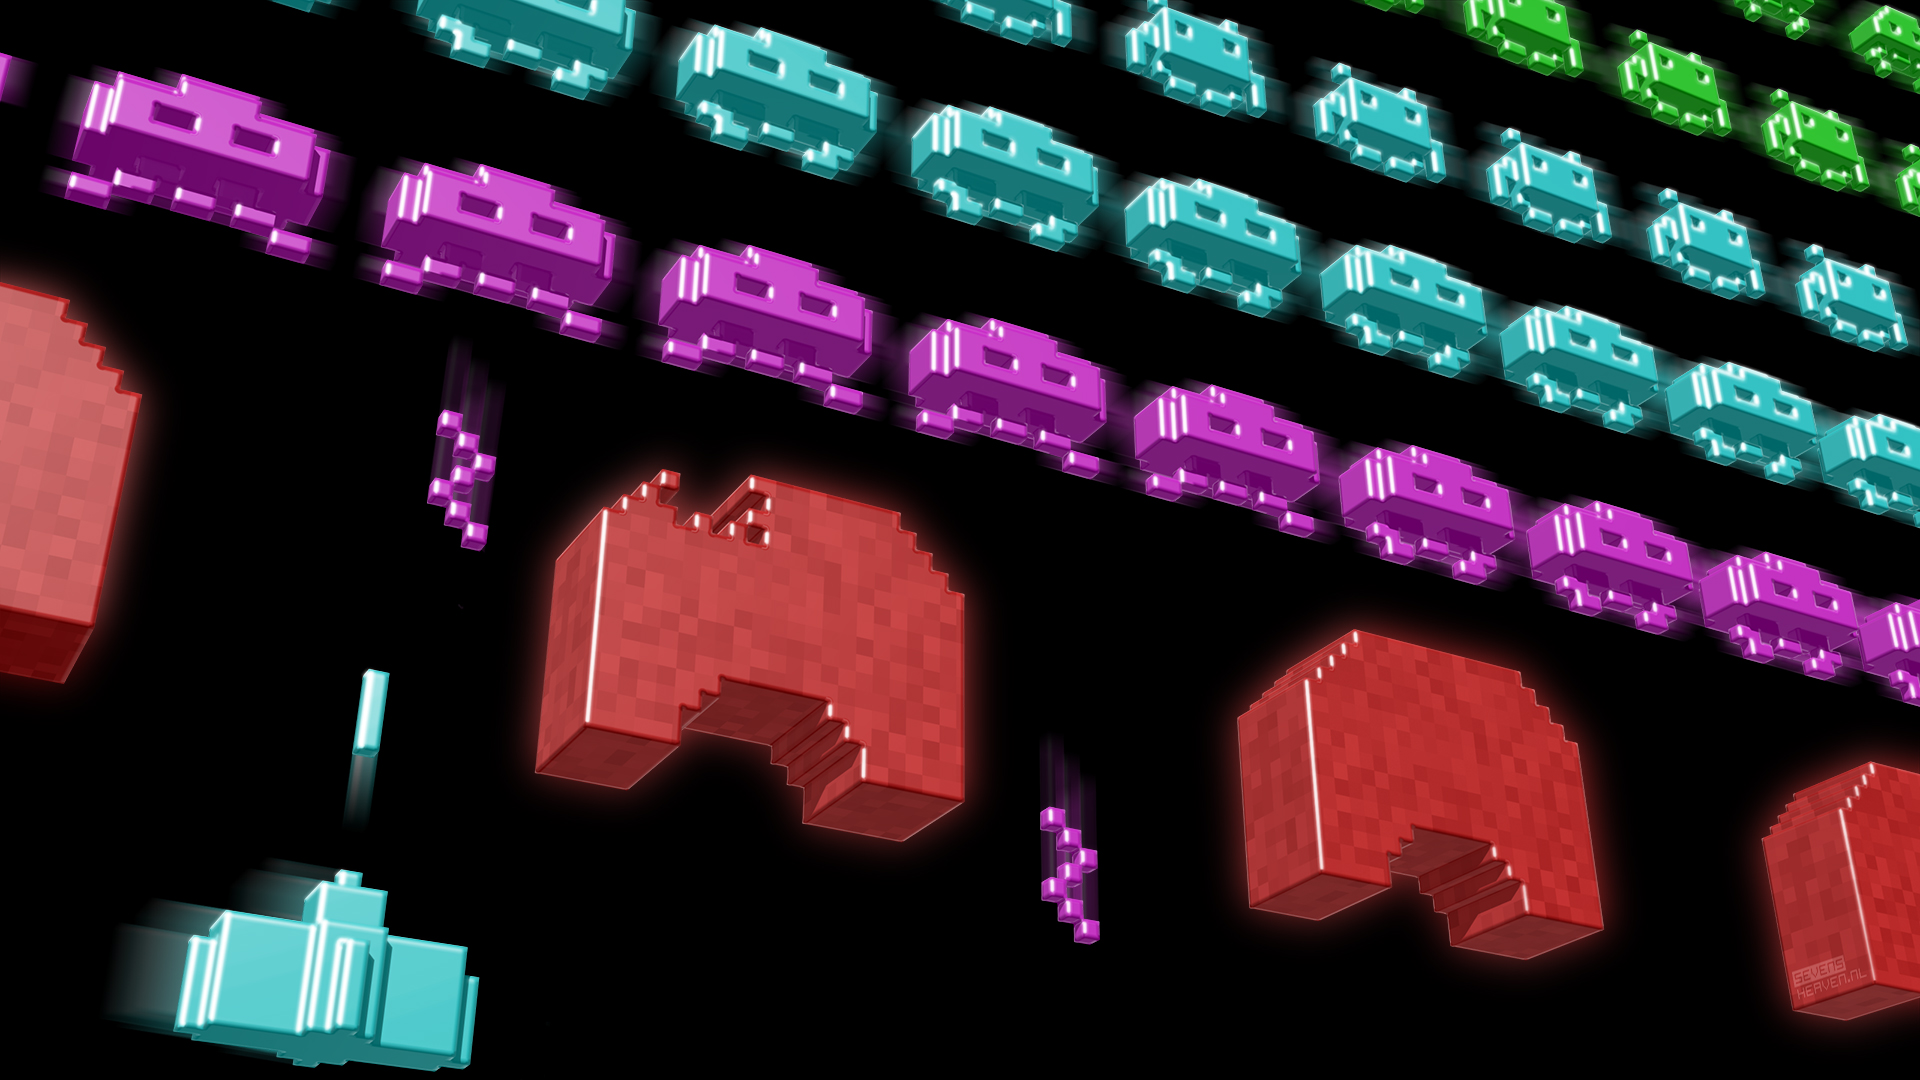 Wallpaper Roundup Retro Video Games as Awesome 3D Pixel Art 1920x1080